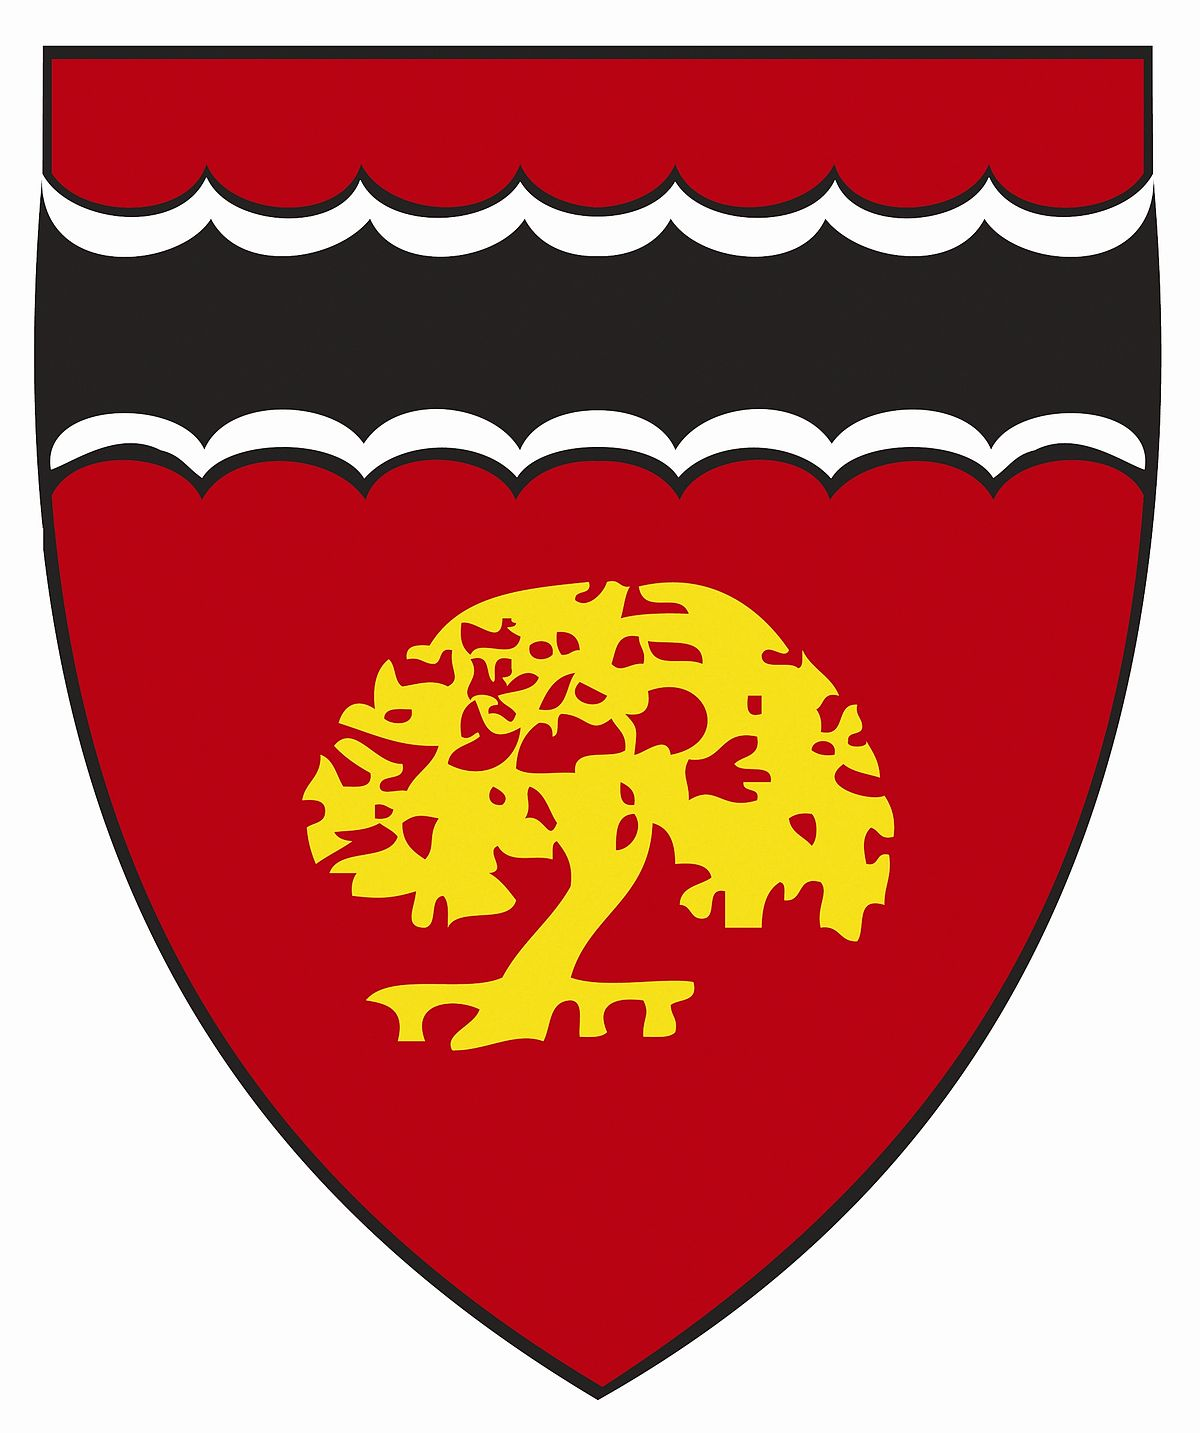 Shield House currier house (harvard college) - wikipedia